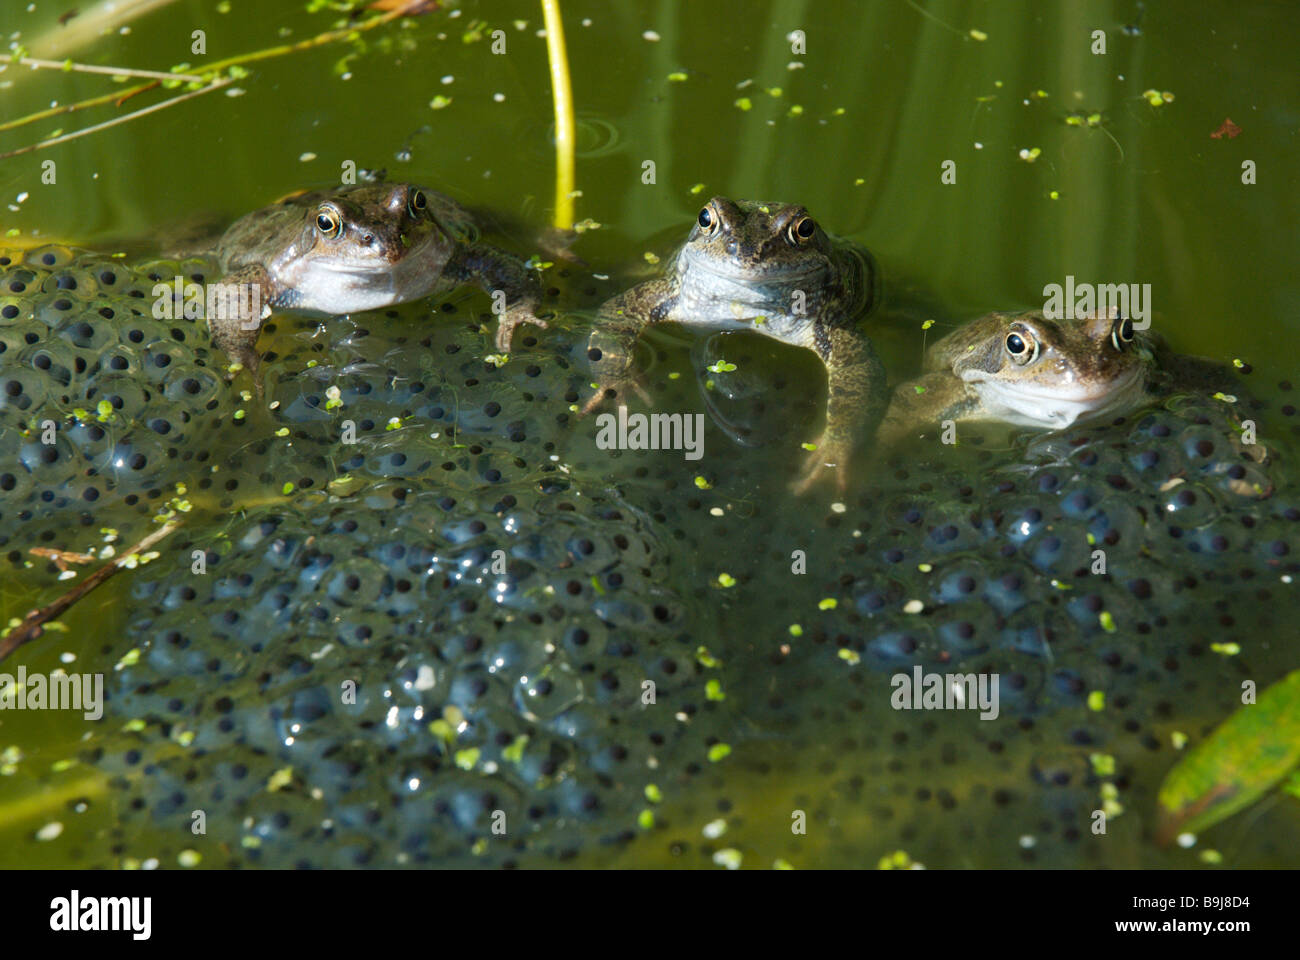 Frogs with their frogs spawn - Stock Image